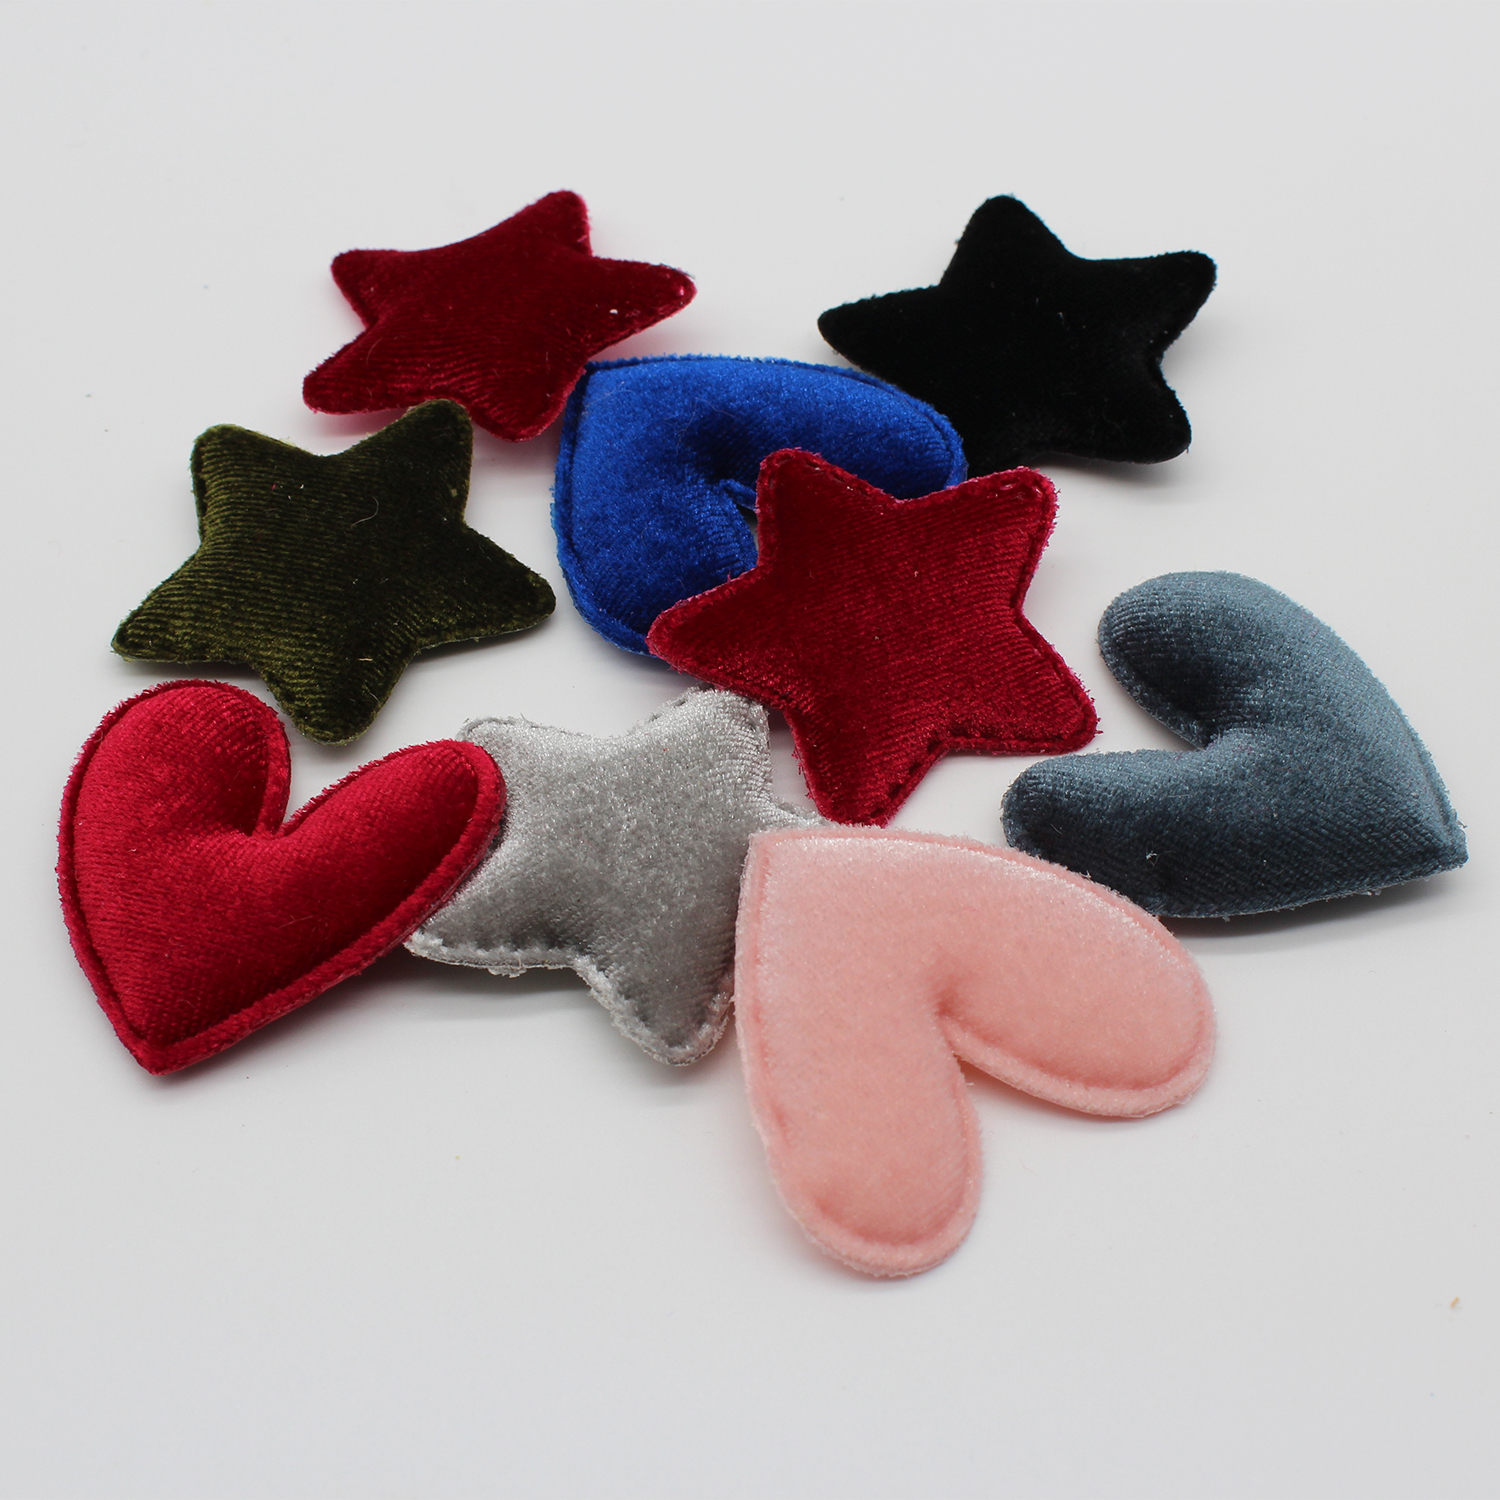 4.8cm Felt Star Heart Shape Padded Appliques For Brooch Headwear BB Clip Accessories and DIY Kid Patches